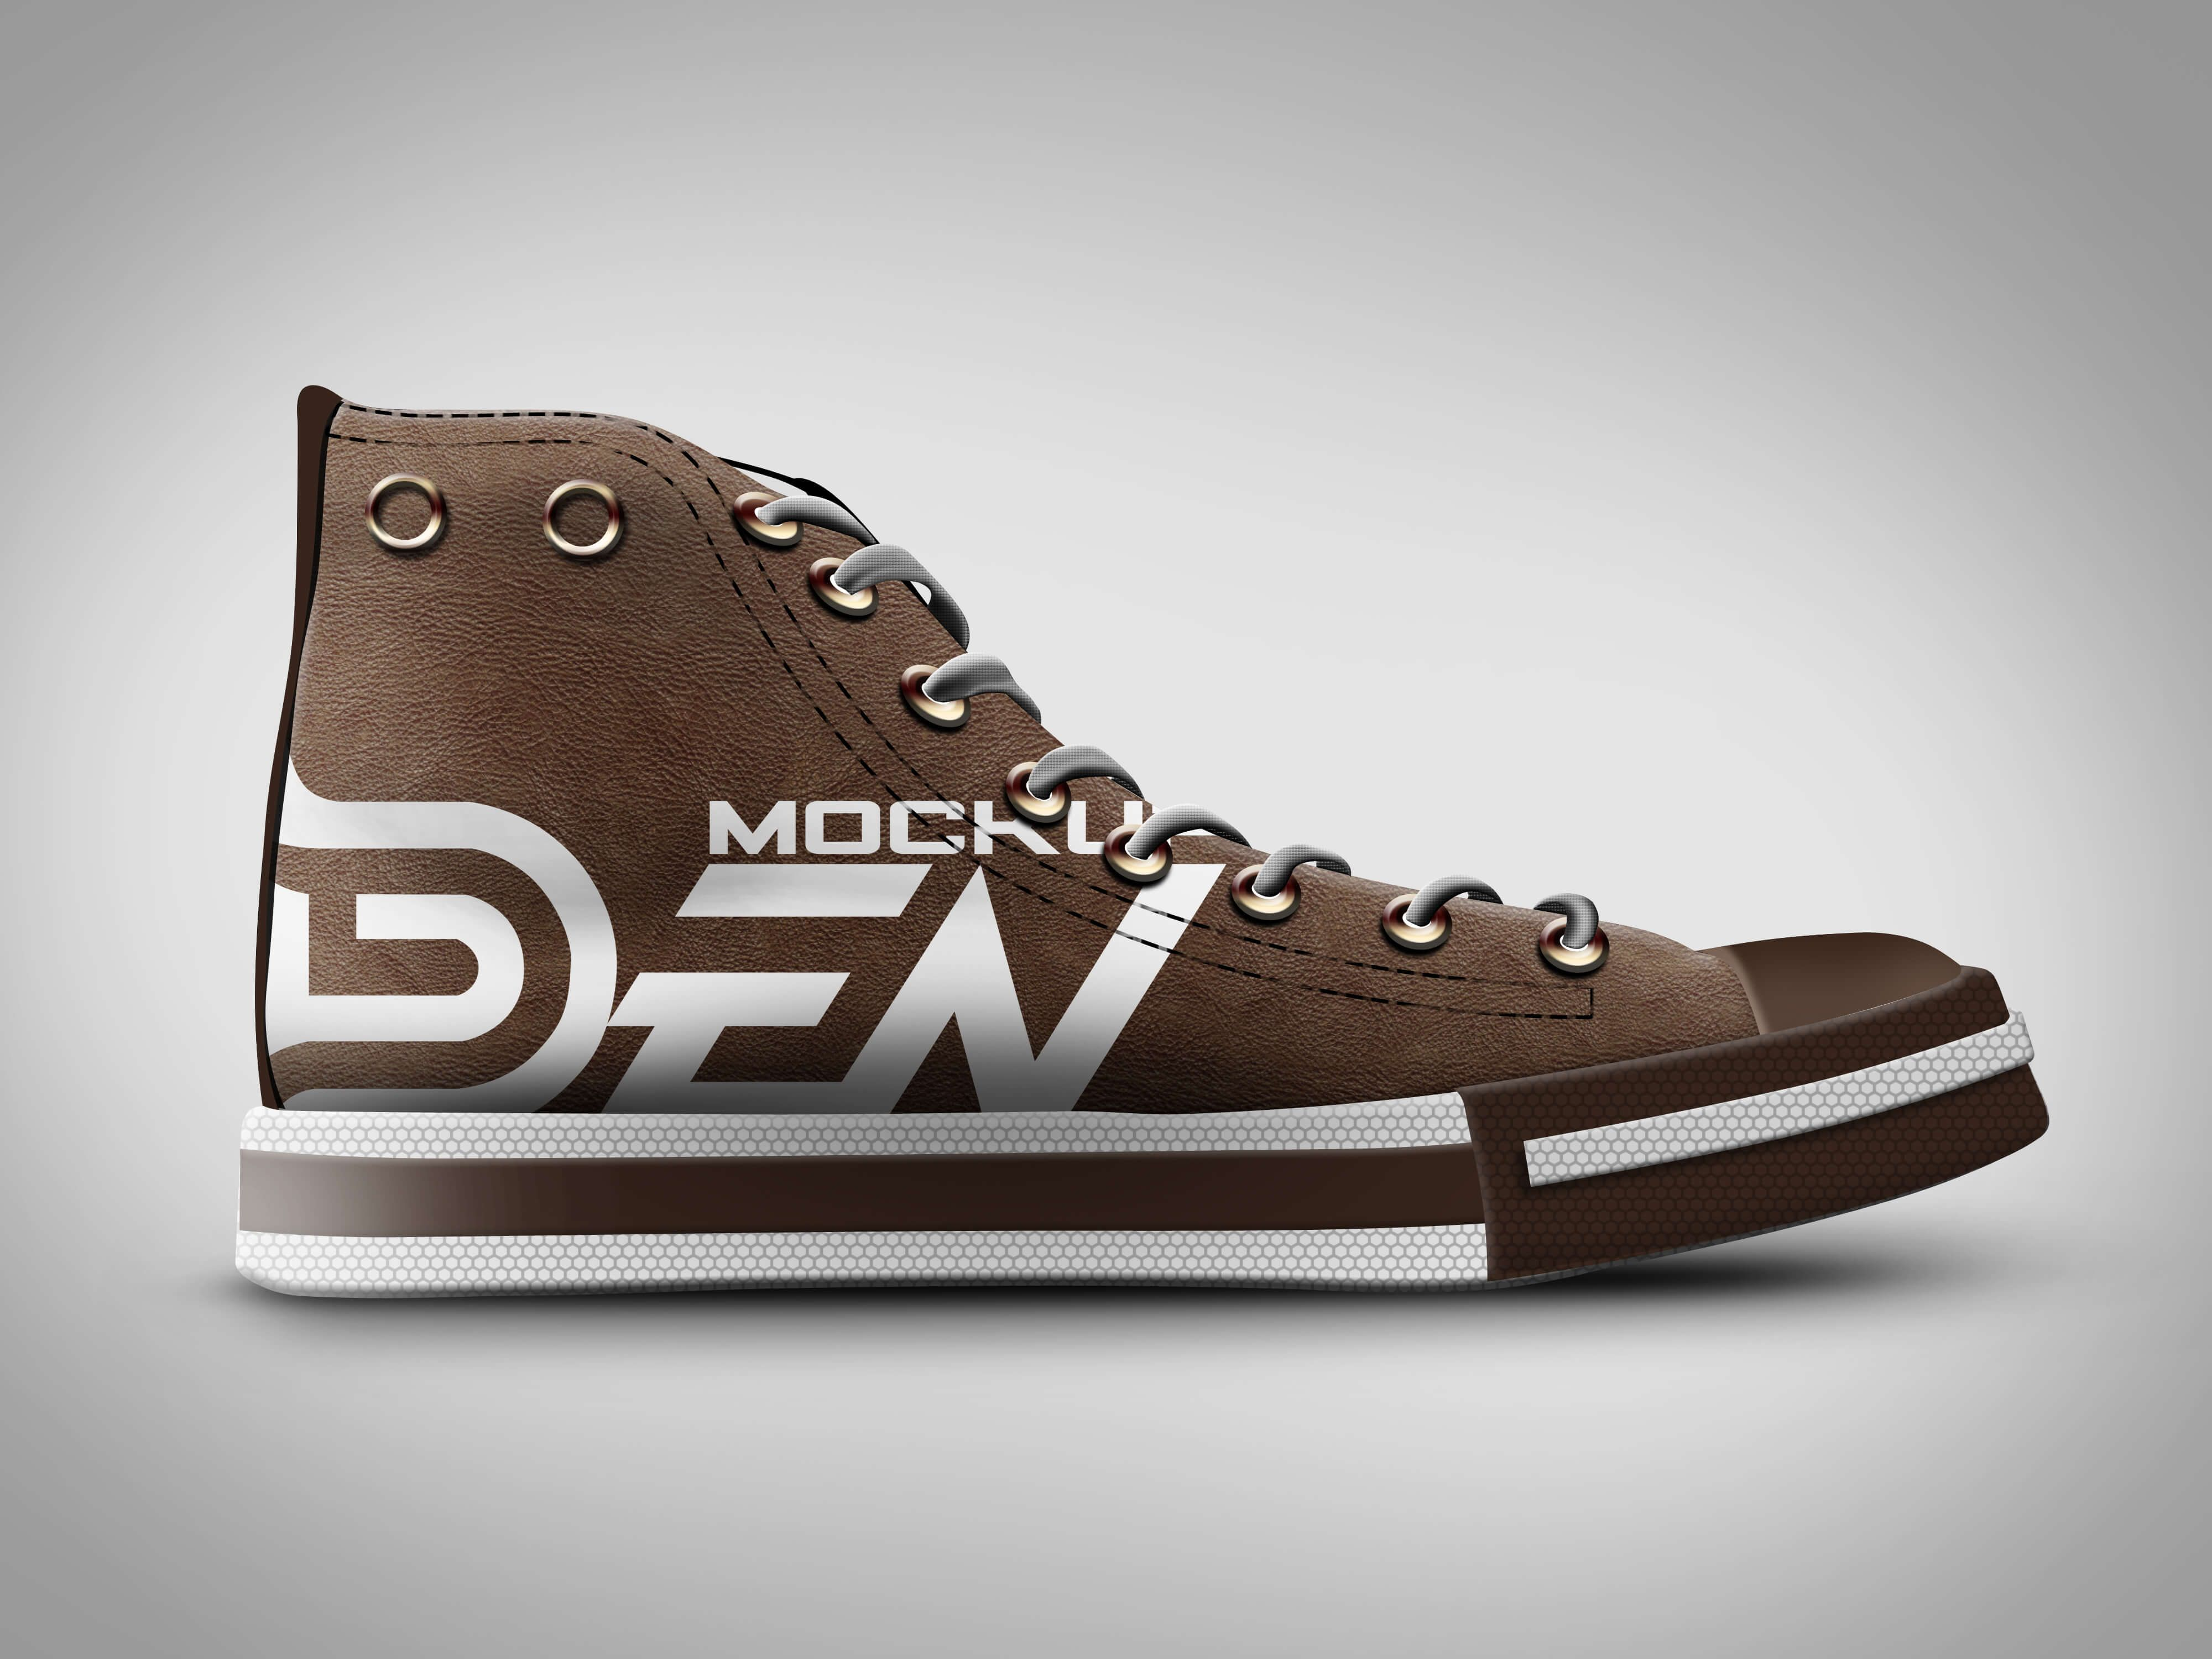 Free Brown Color Shoe Mockup Psd Template Brown Color Shoes Brown